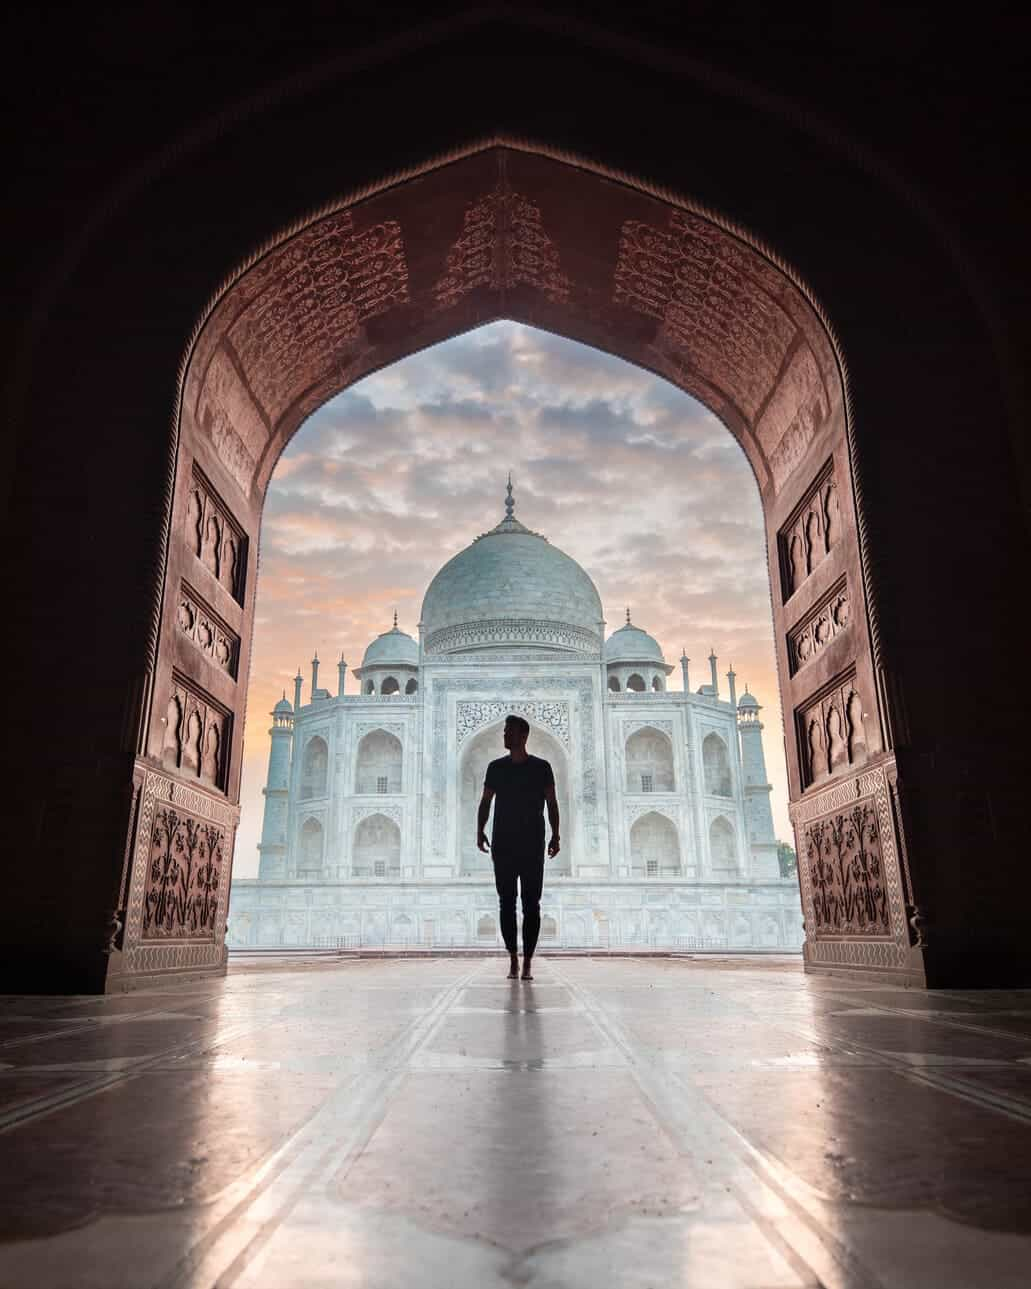 man_standing_in_archway_in_front_of_taj_mahal_agra_india